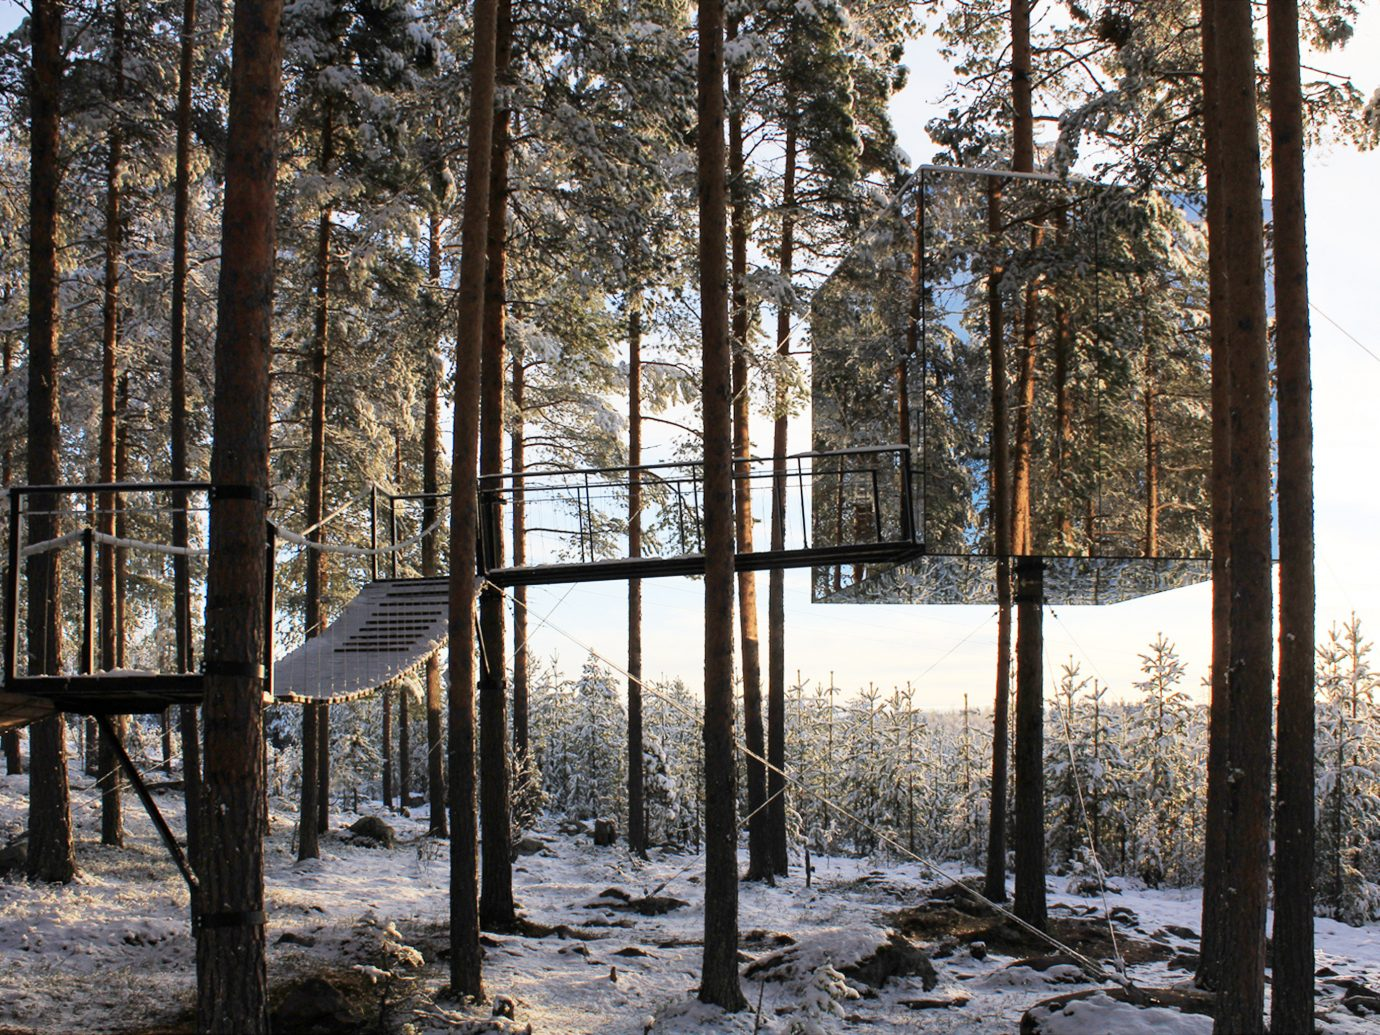 Design Hotels tree outdoor habitat snow Winter Nature wilderness natural environment weather woodland season Forest woody plant wood sunlight autumn conifer area wooded day surrounded